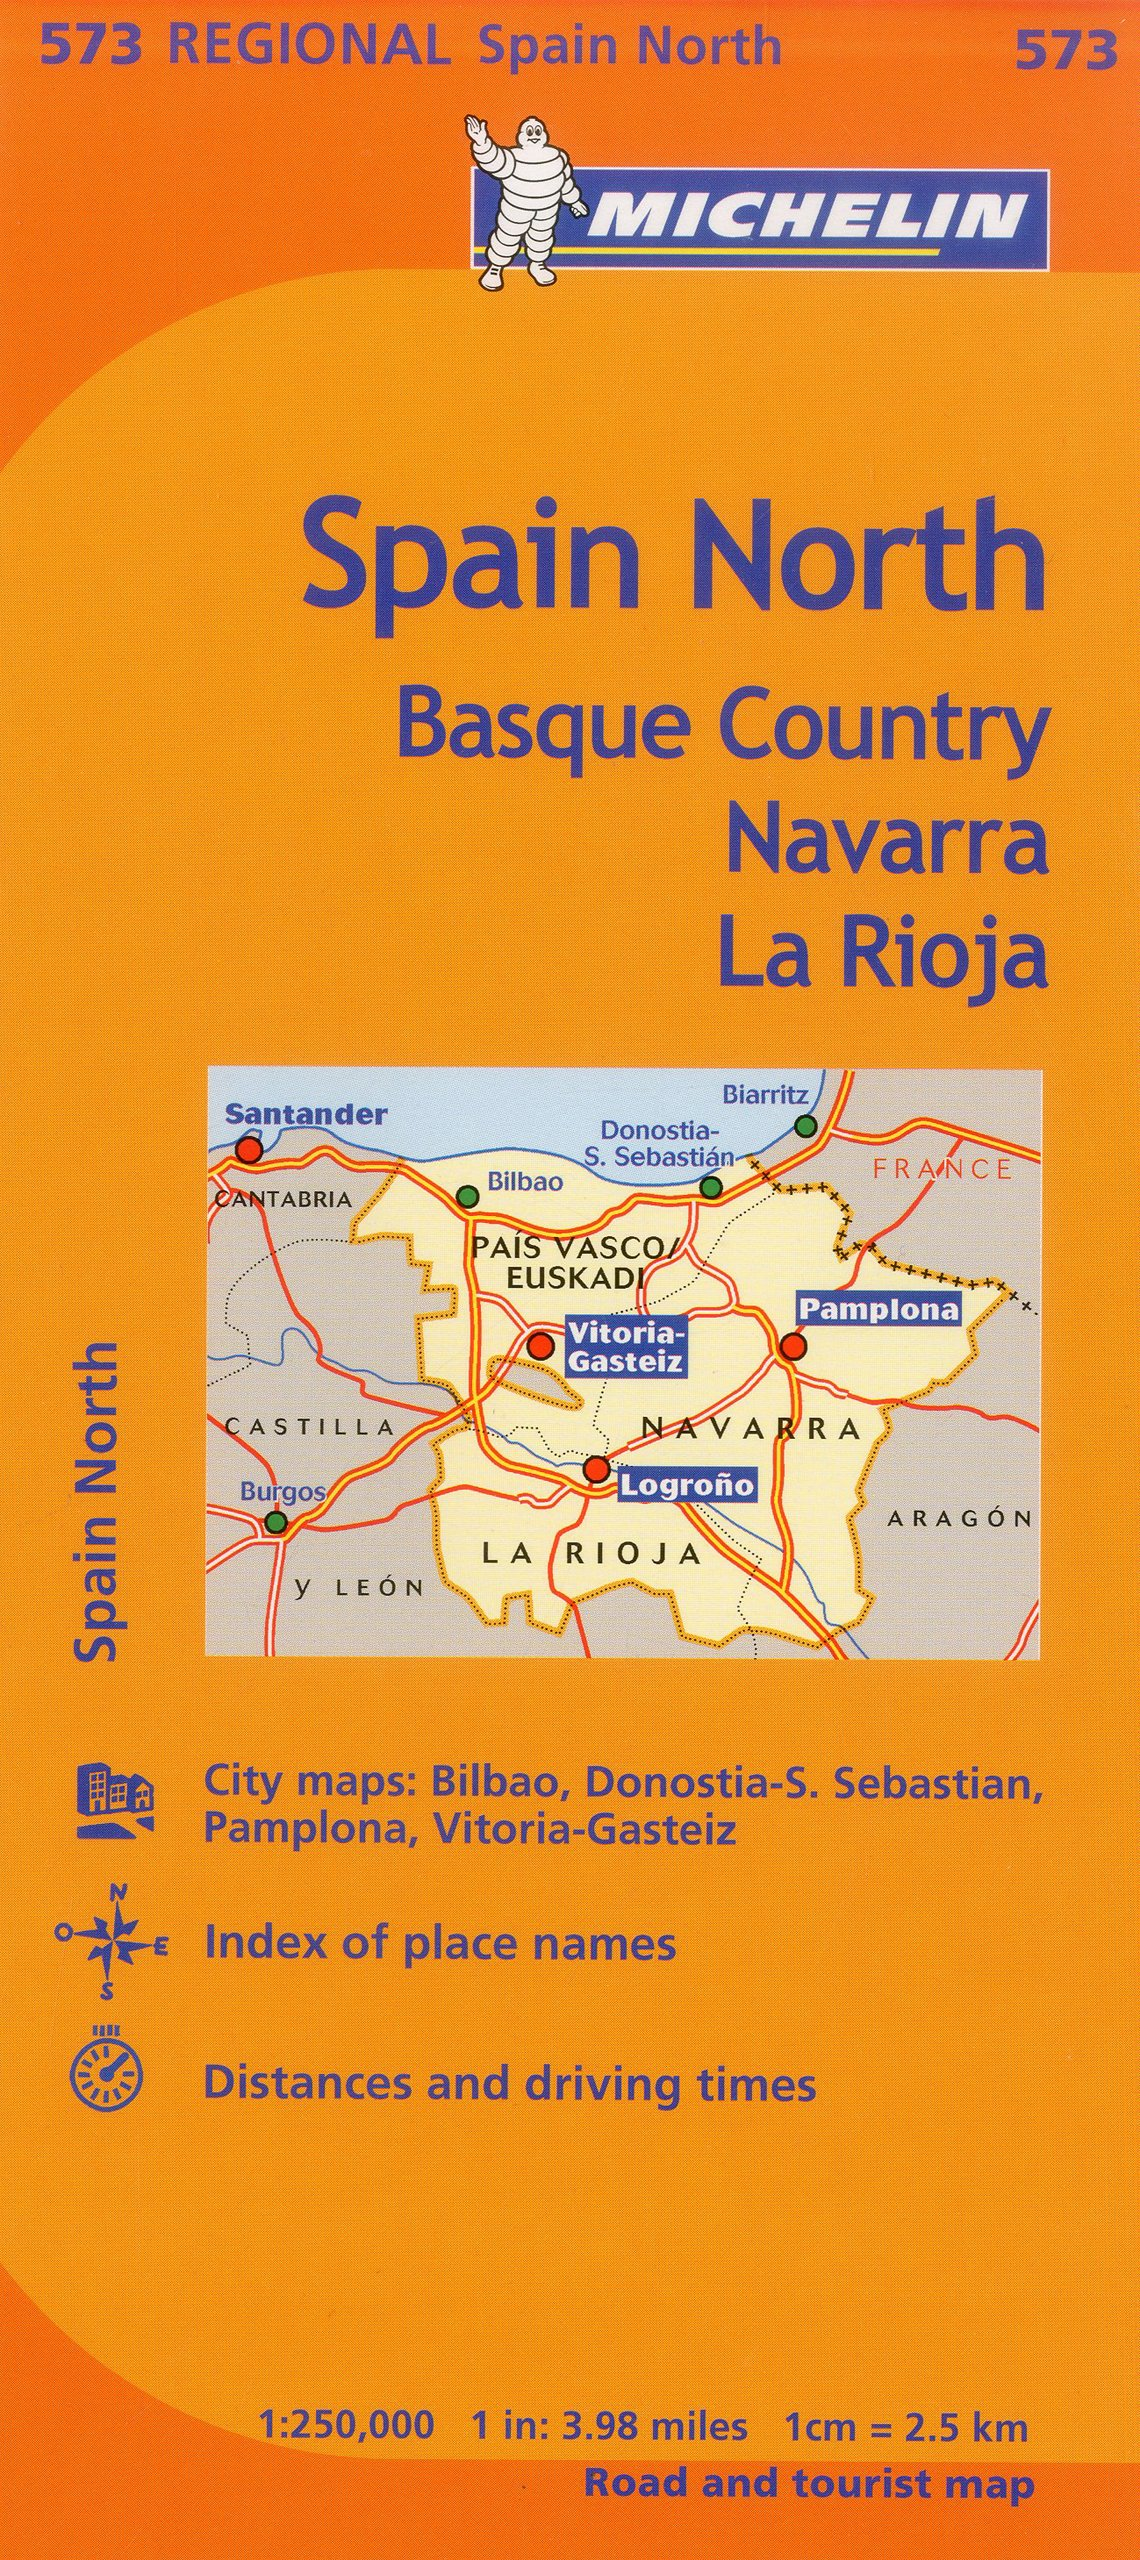 Michelin Spain North Basque Country Navarra La Rioja Map 573